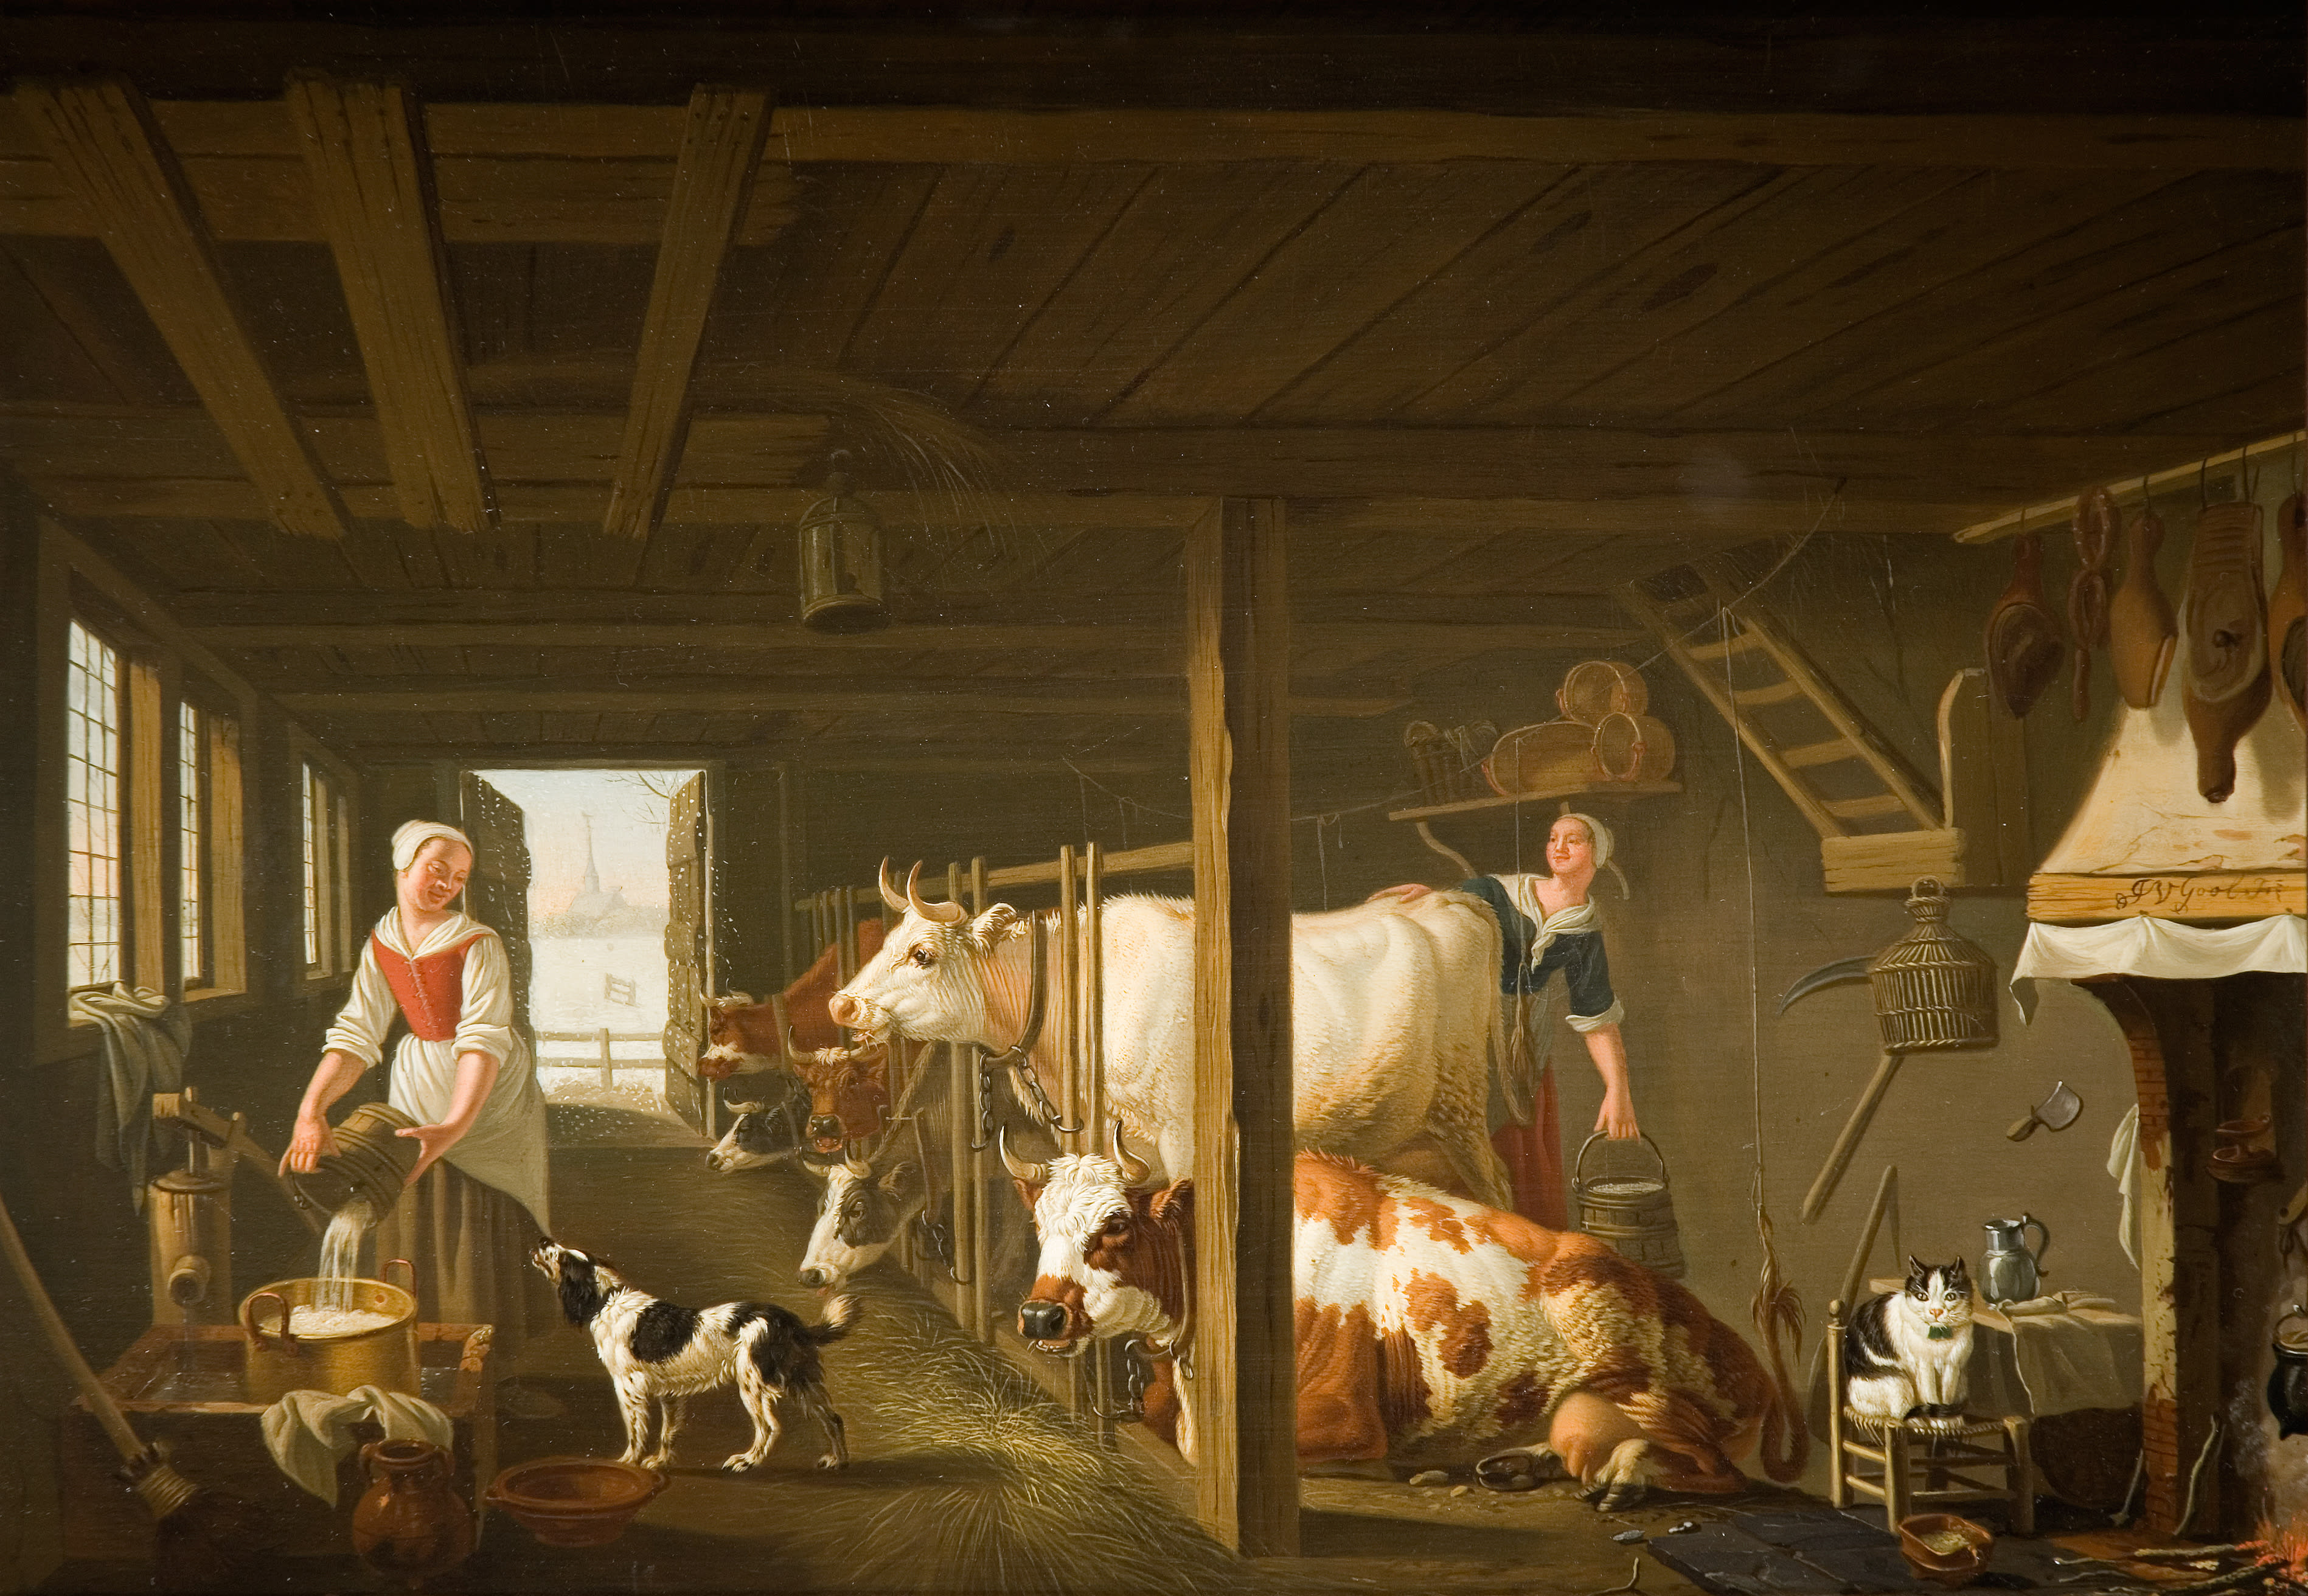 Oil painting of two women milking cows in a barn, In the centre stands a white cow.